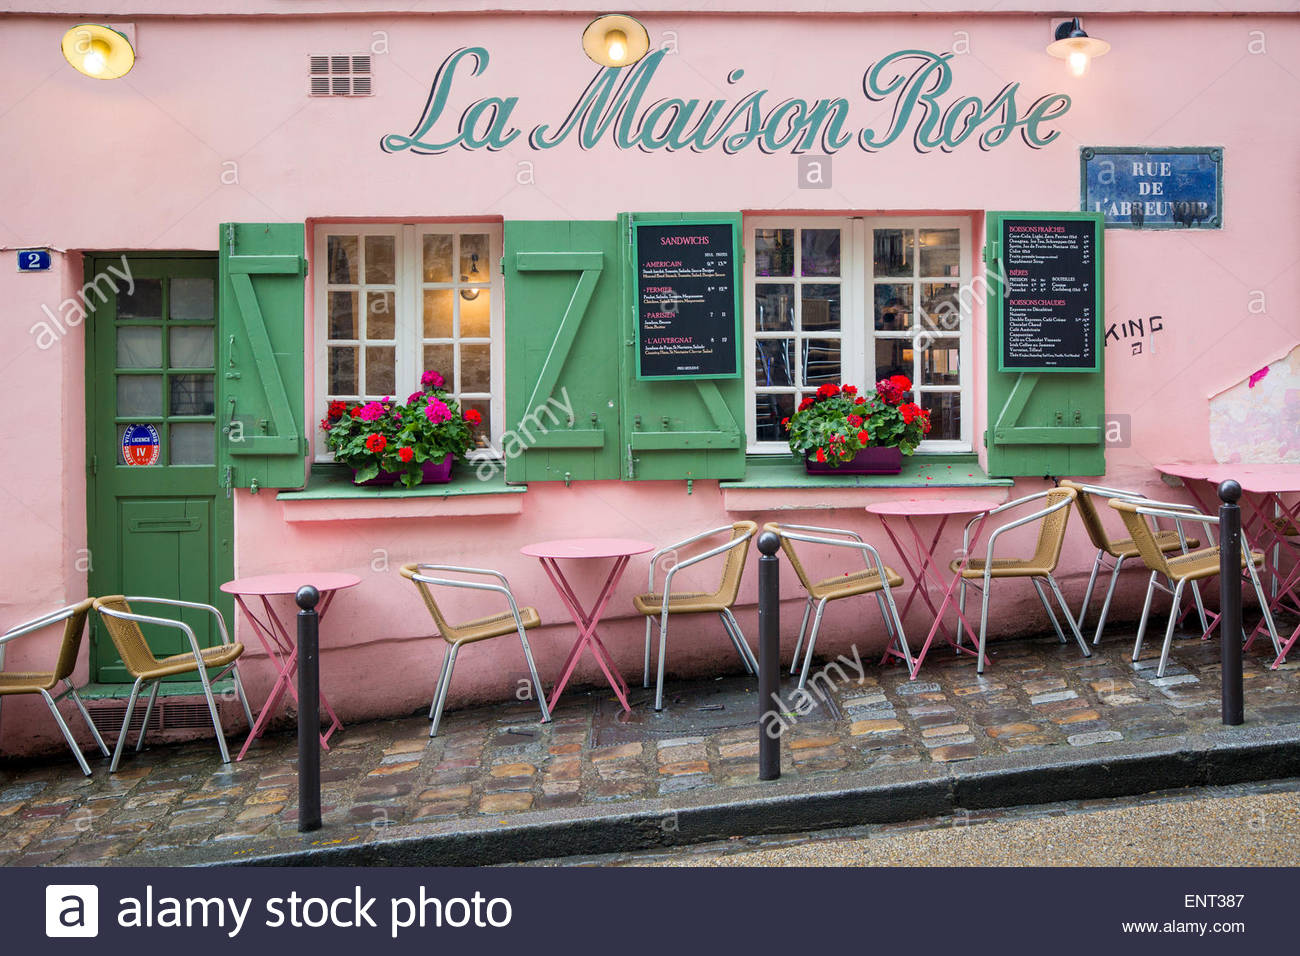 Cafe la maison rose montmartre paris france stock photo for La maison du cafe paris